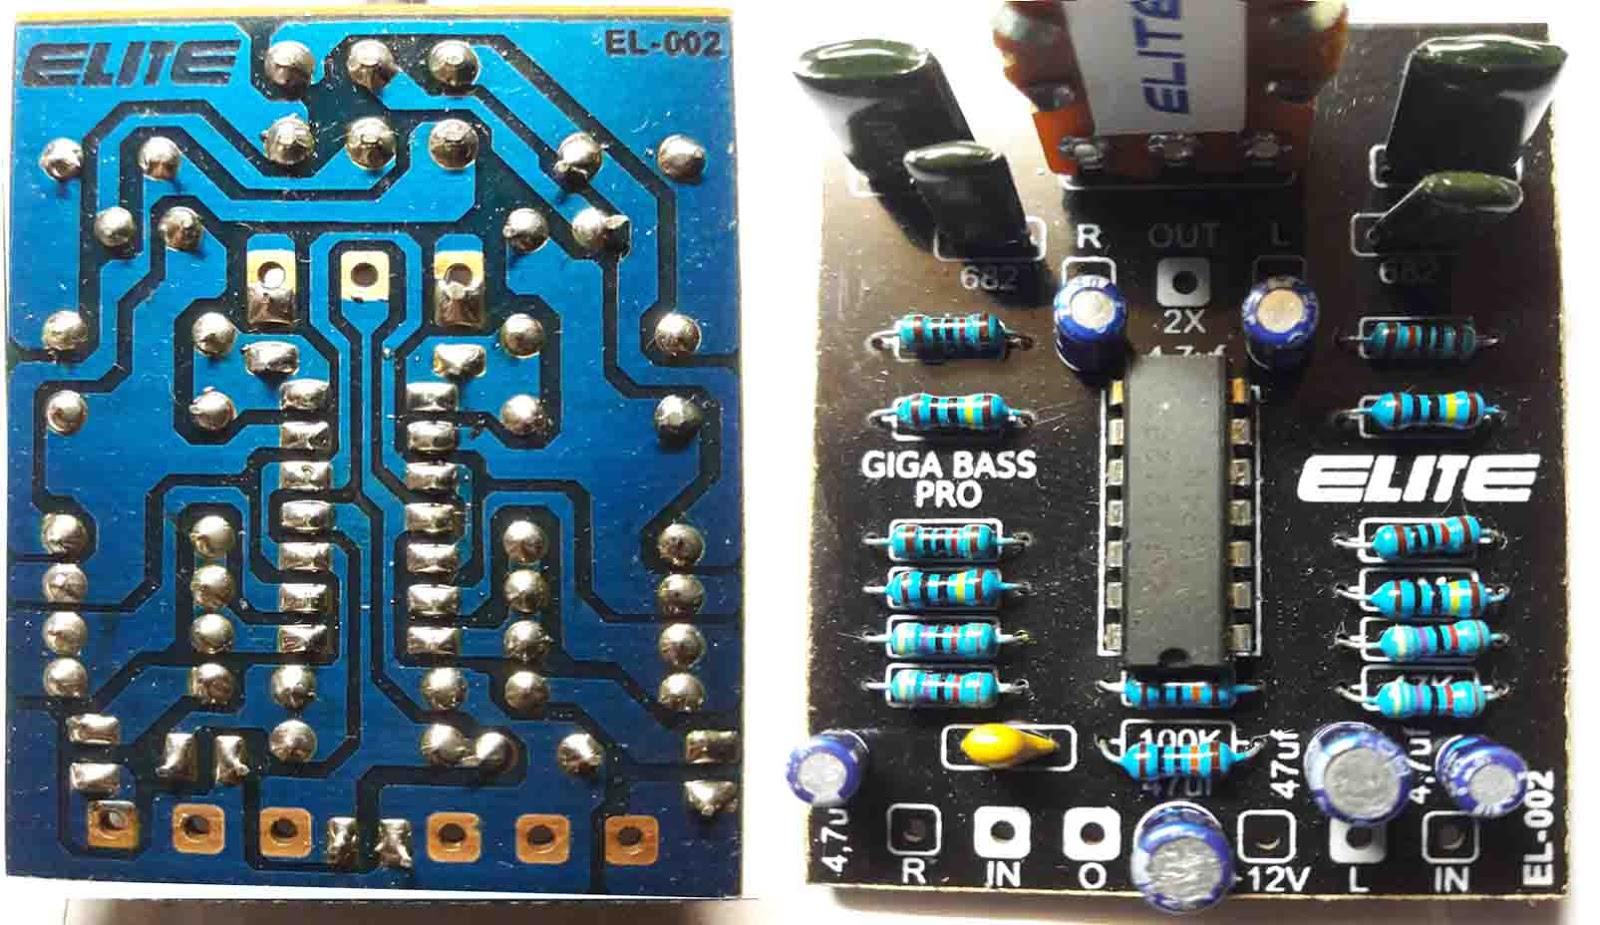 Lm324 Giga Bass Pro Circuit Electronics T Circuits Turbo Booster